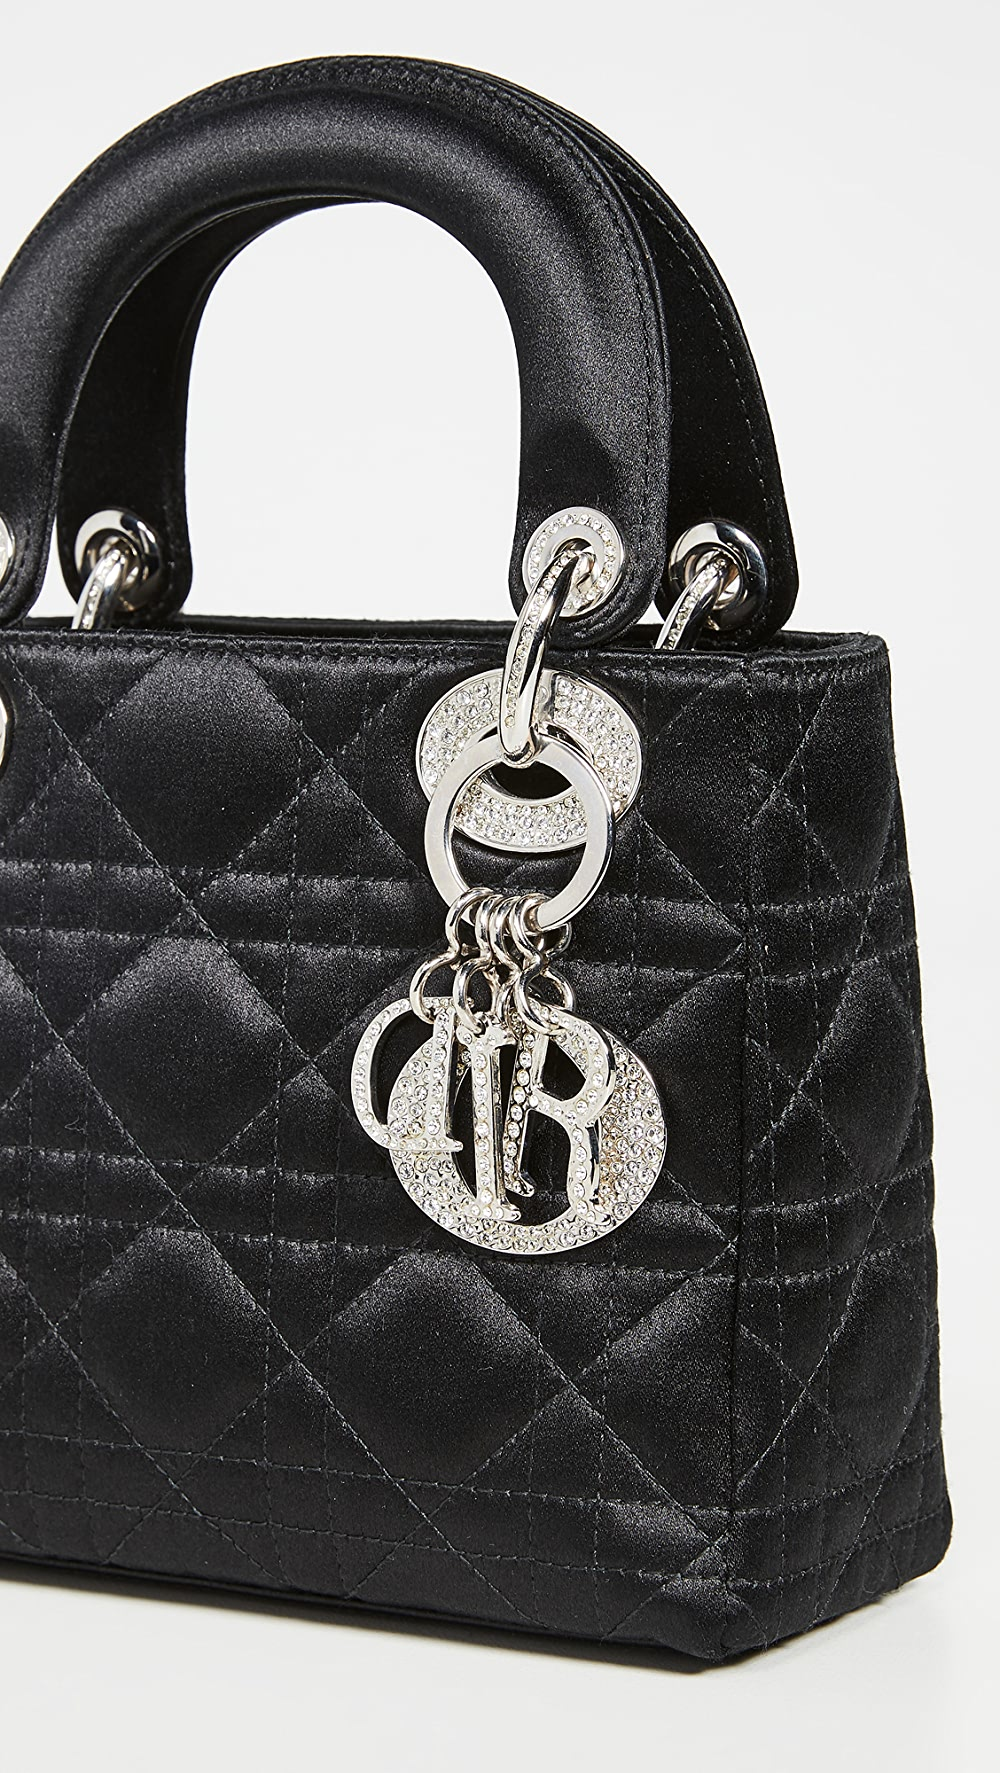 Brave What Goes Around Comes Around - Black Satin Lady Dior Mini Bag Pleasant To The Palate